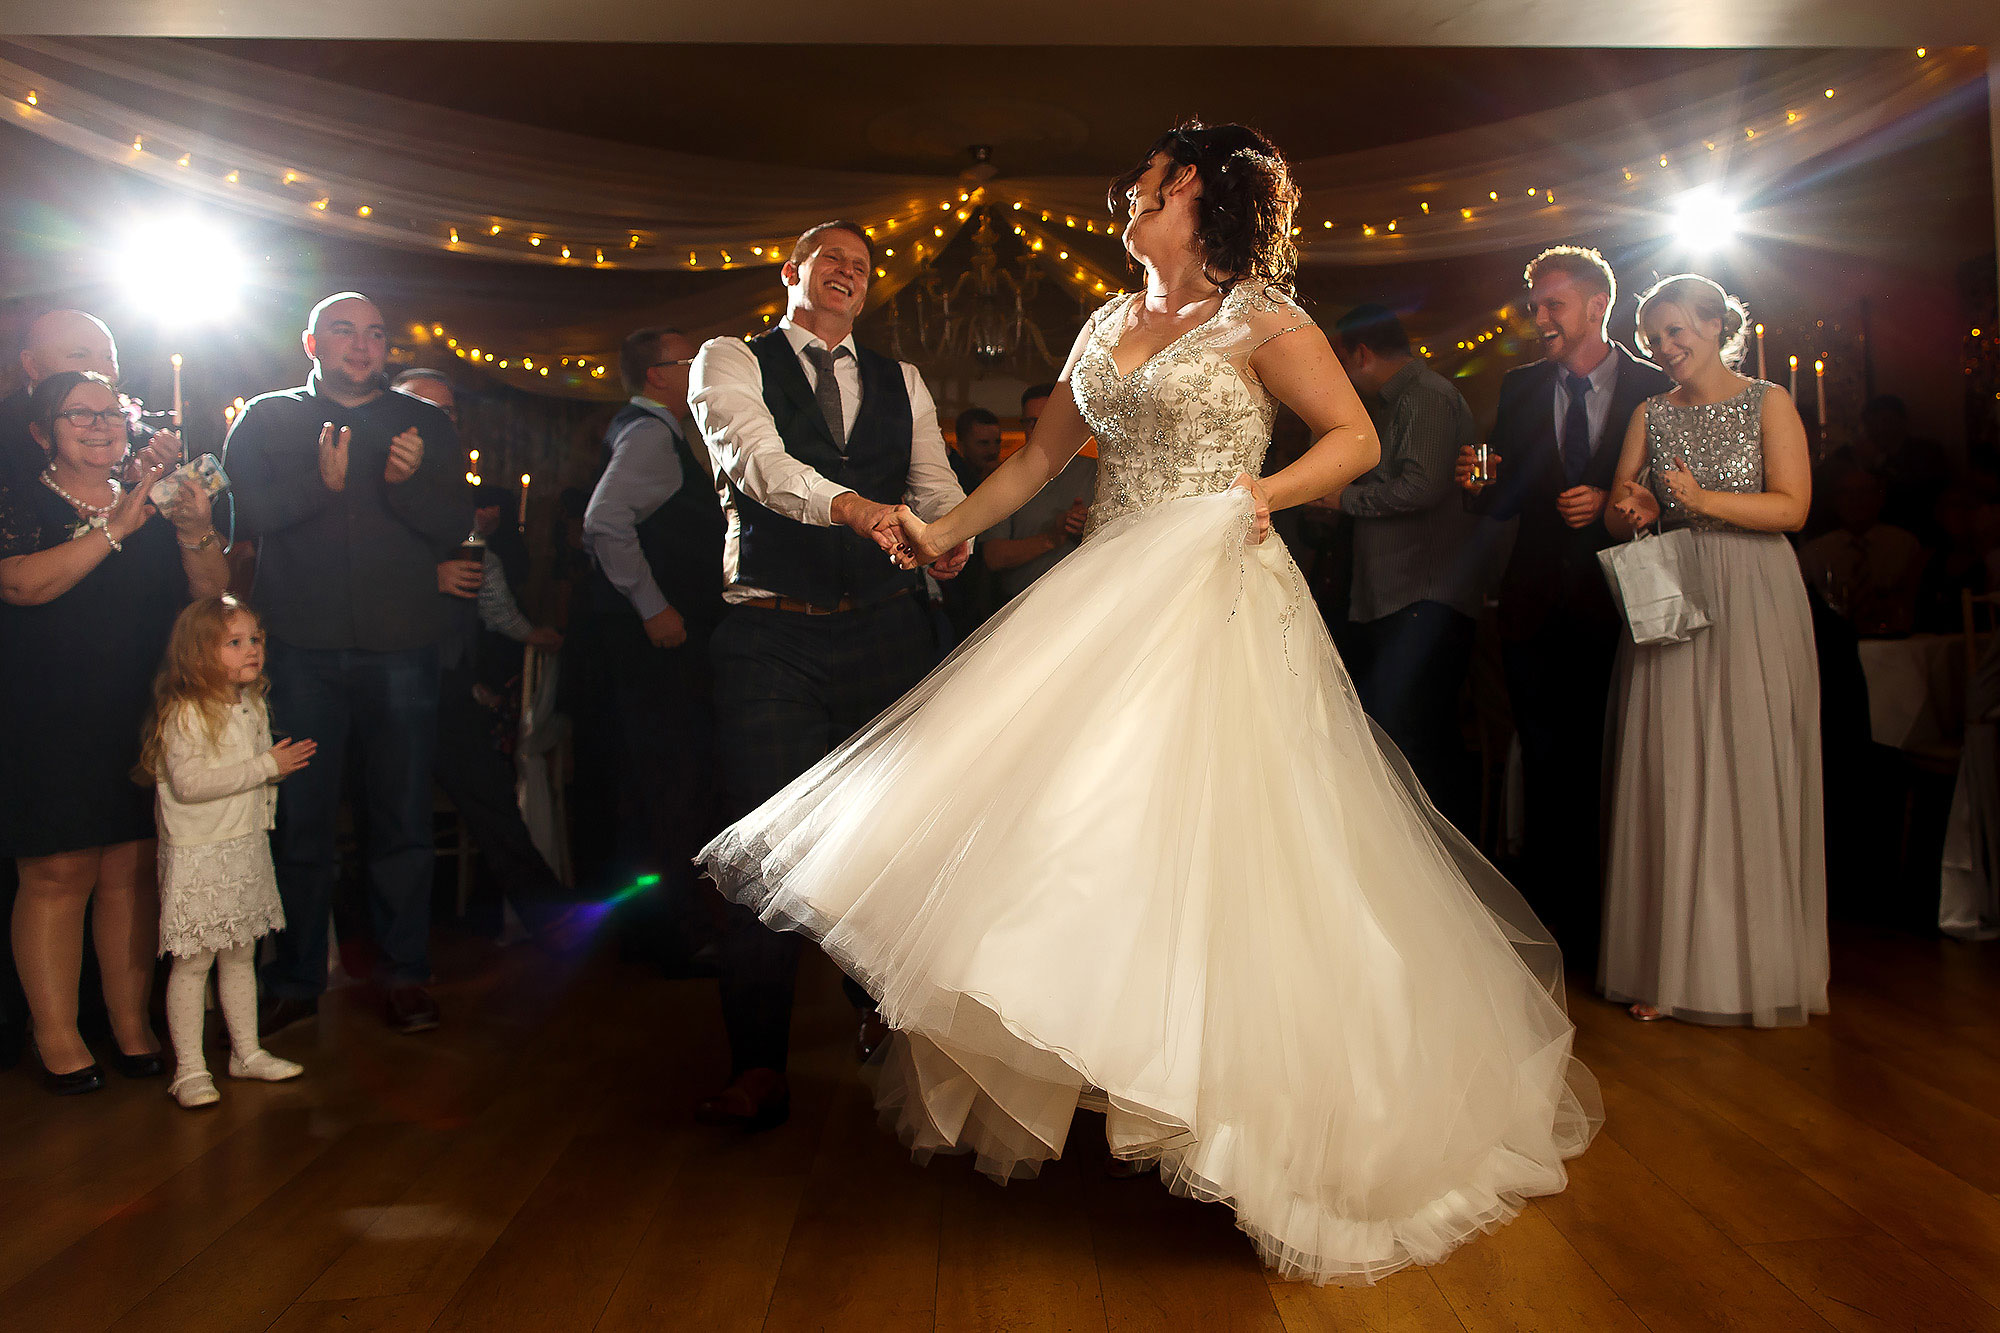 Bride and groom swinging each other round the dance floor with the wedding dress flowing | Eaves Hall wedding photography by Toni Darcy